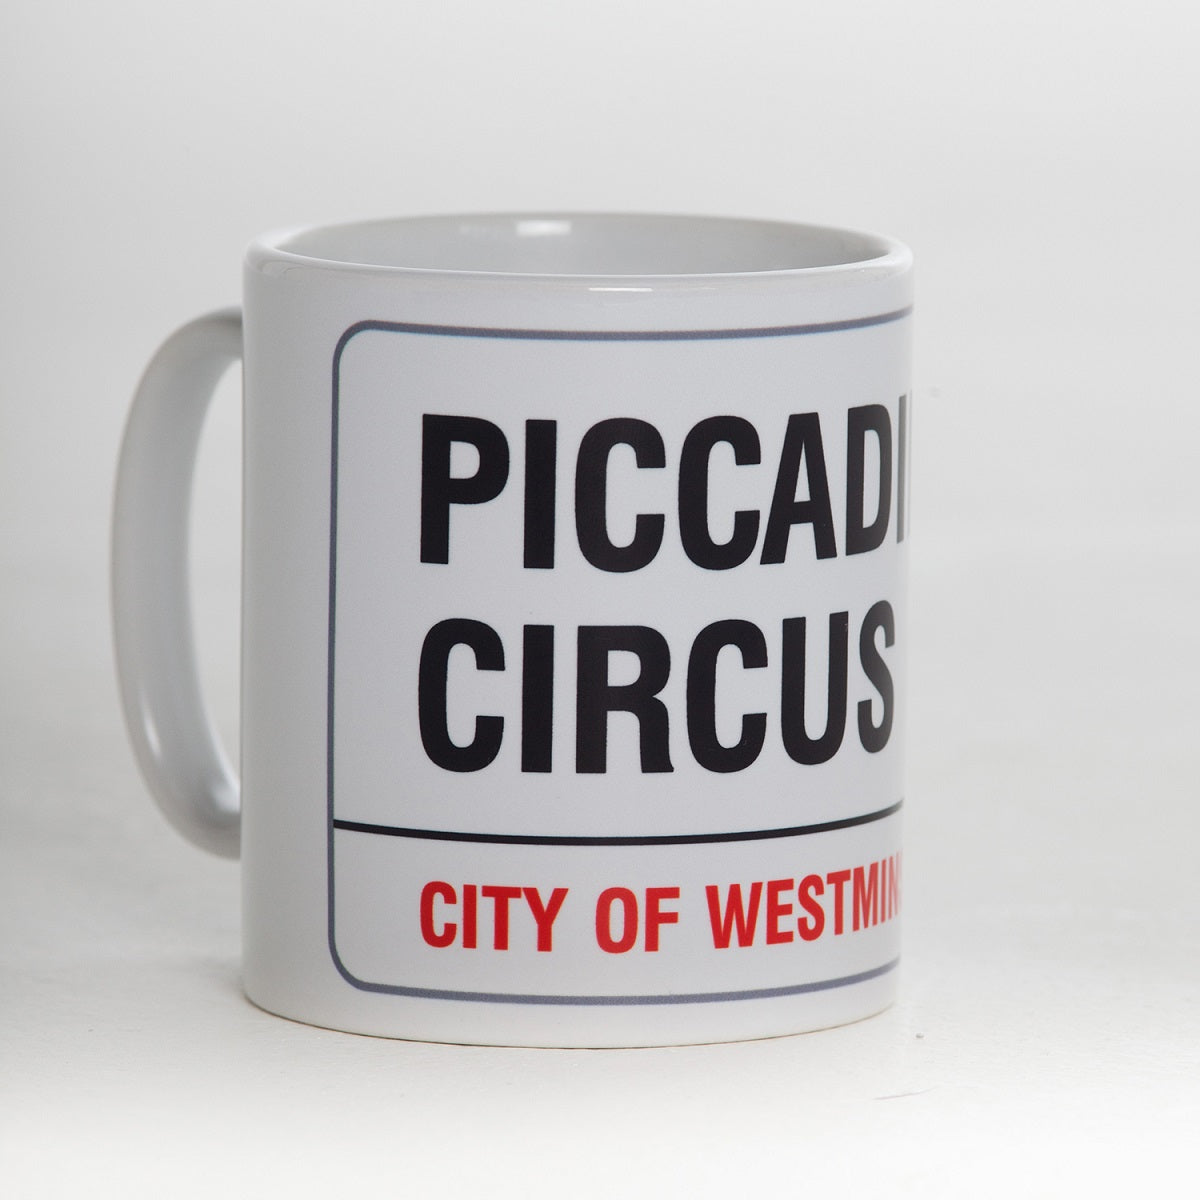 Earthenware piccadilly circus street sign mug